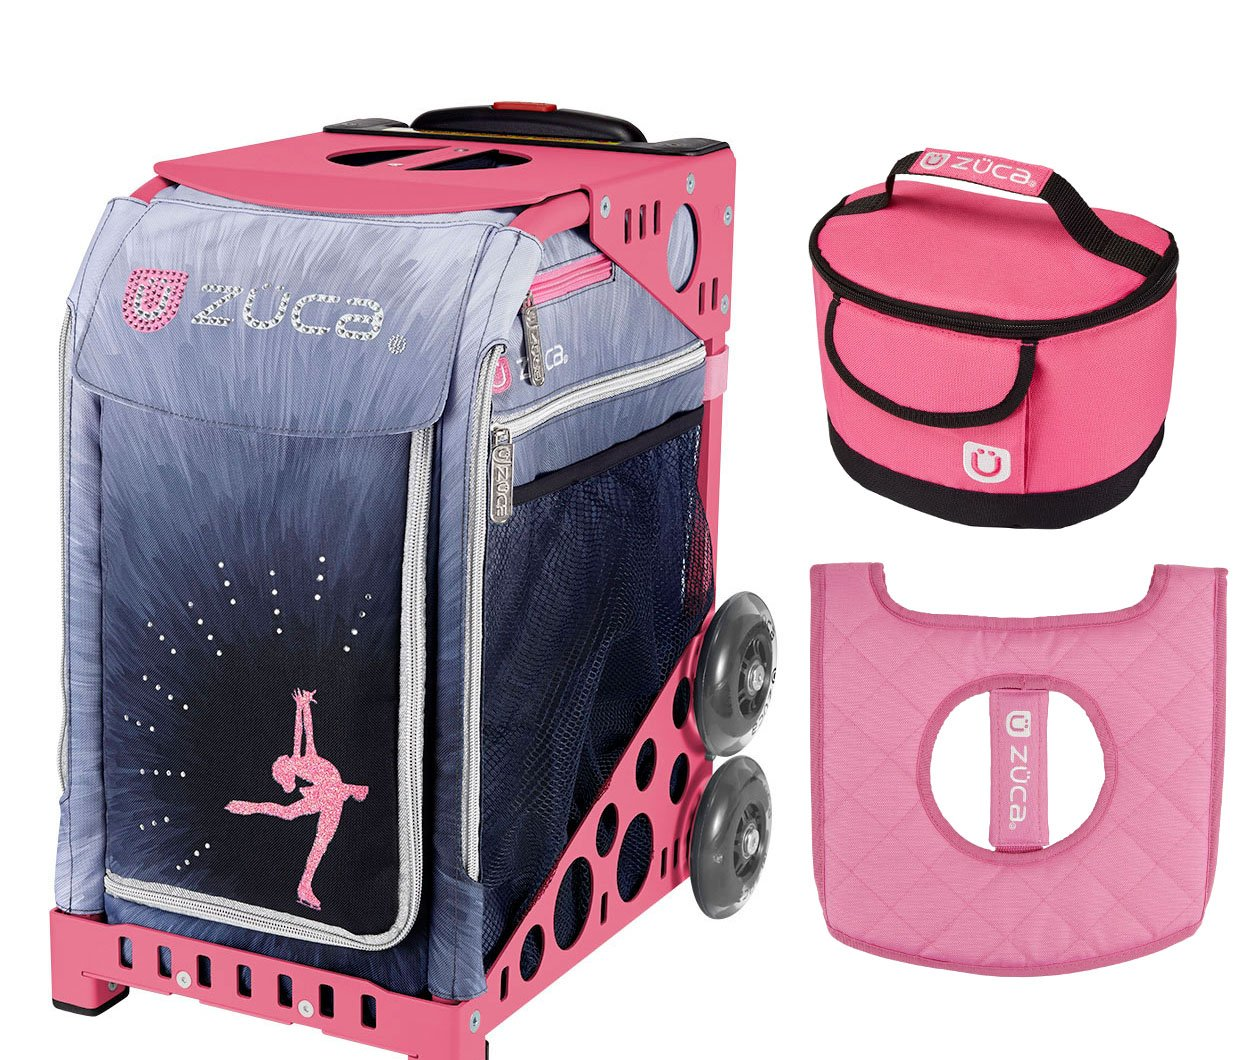 Zuca Sport Bag - Ice Dreamz Lux with Gift Lunchbox and Seat Cover (Pink Frame) by ZUCA